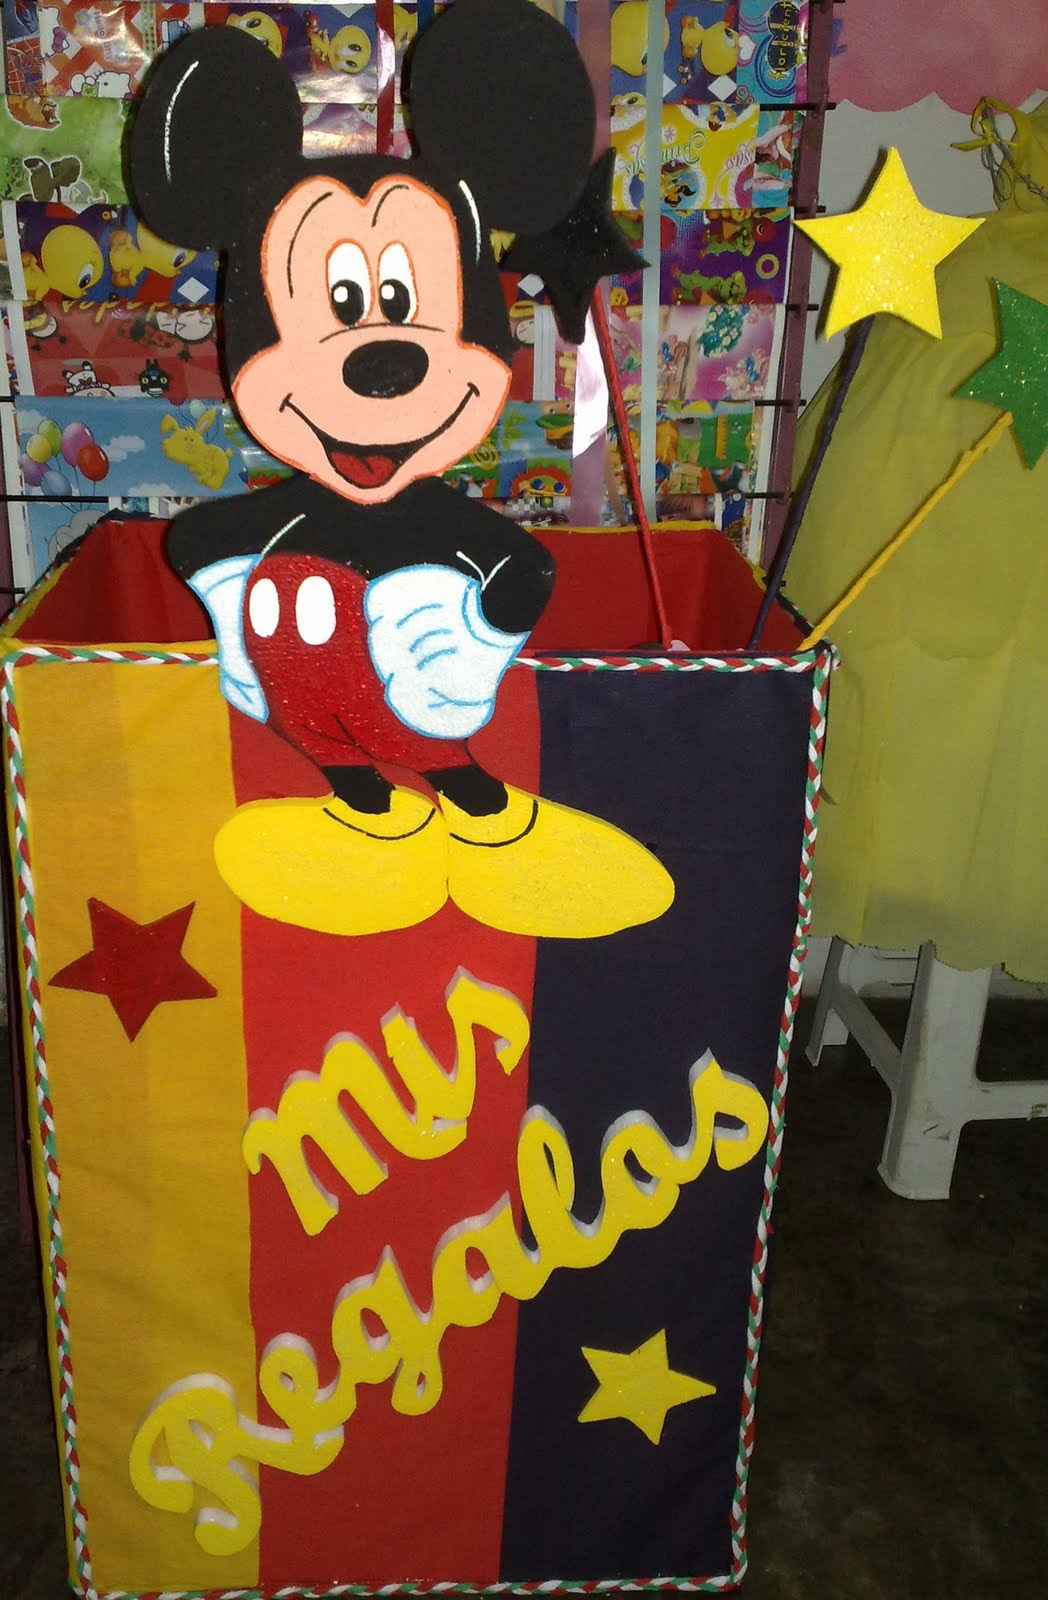 Caja De Regalos Para Fiestas Infantiles De Minnie Wallpapers | Real ...